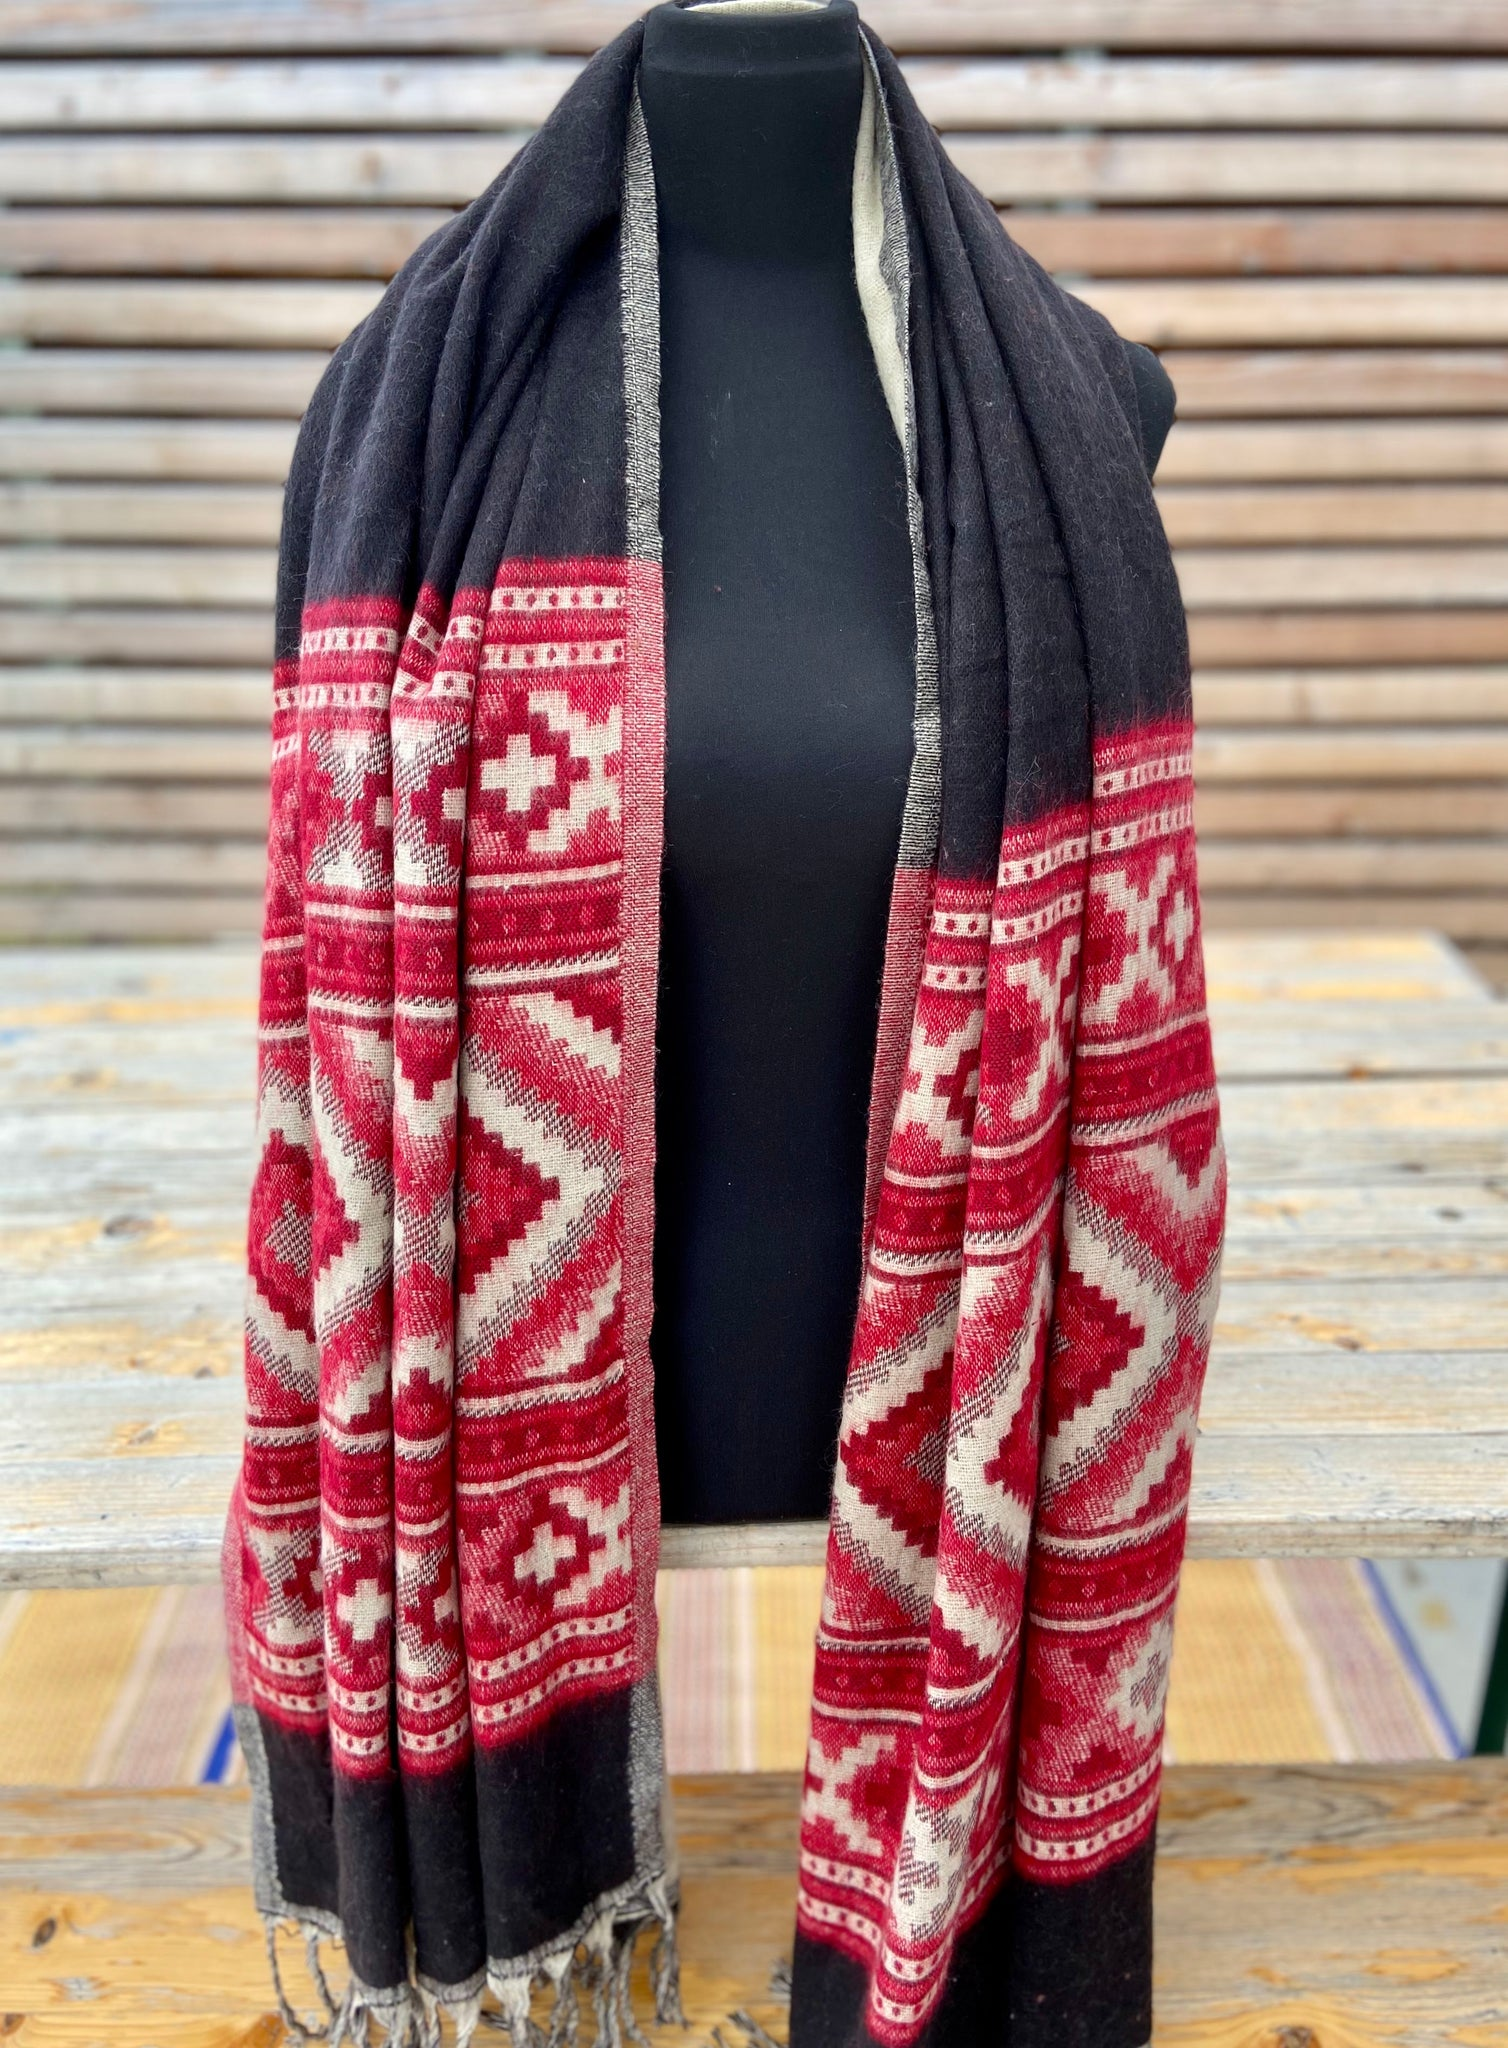 Aztec border boho shawl (reversible in black and tan colors with red pattern)